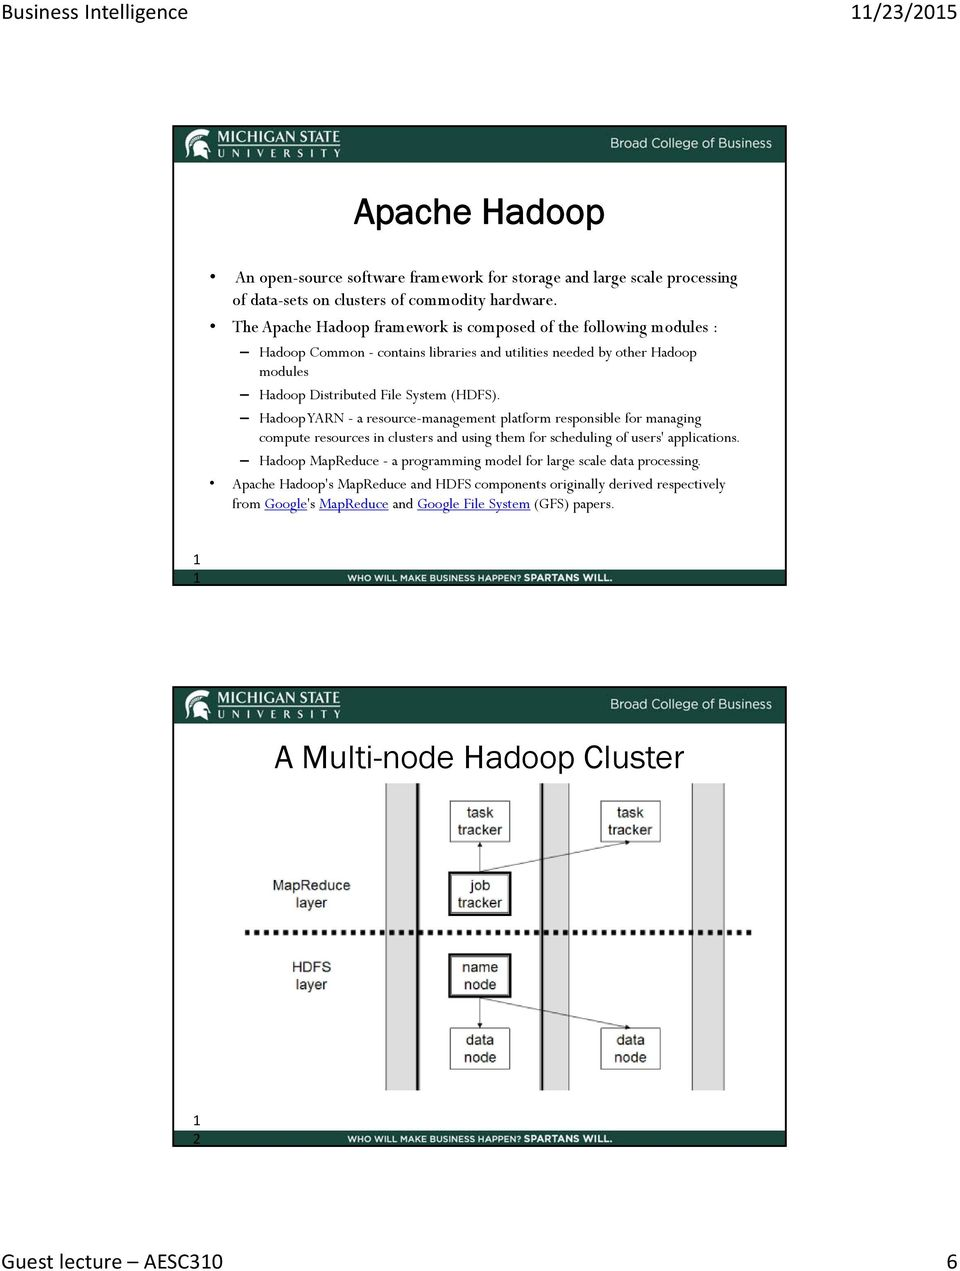 HadoopYARN - a resource-management platform responsible for managing compute resources in clusters and using them for scheduling of users' applications.